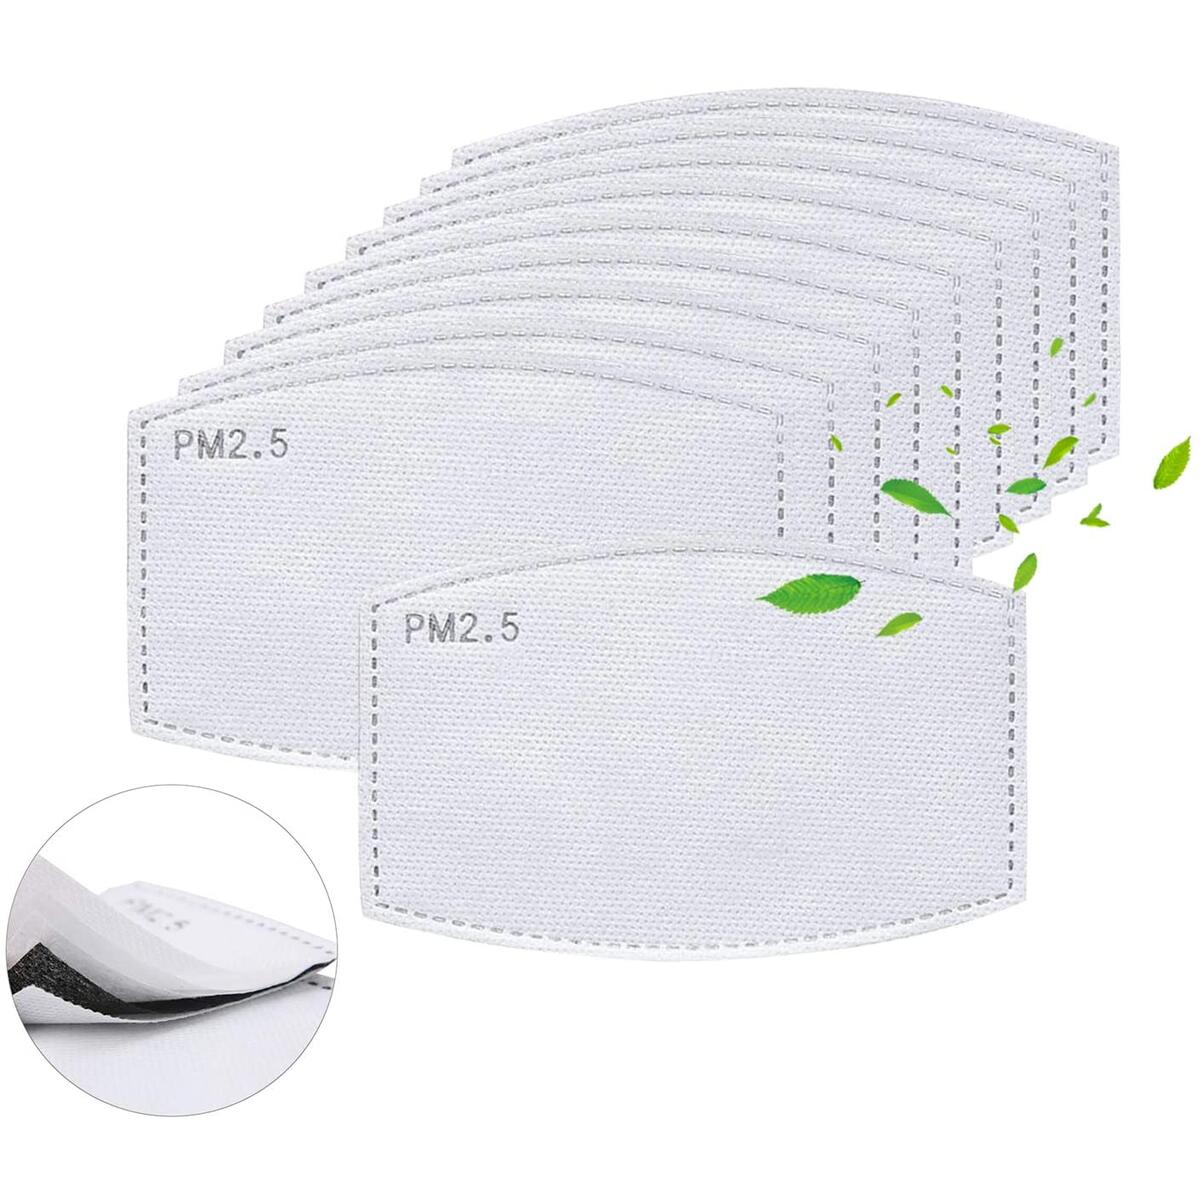 PM 2.5 Activated Carbon Filter Insert 5 Layers Protective Replacements Anti Haze Filter Paper (10PCS)